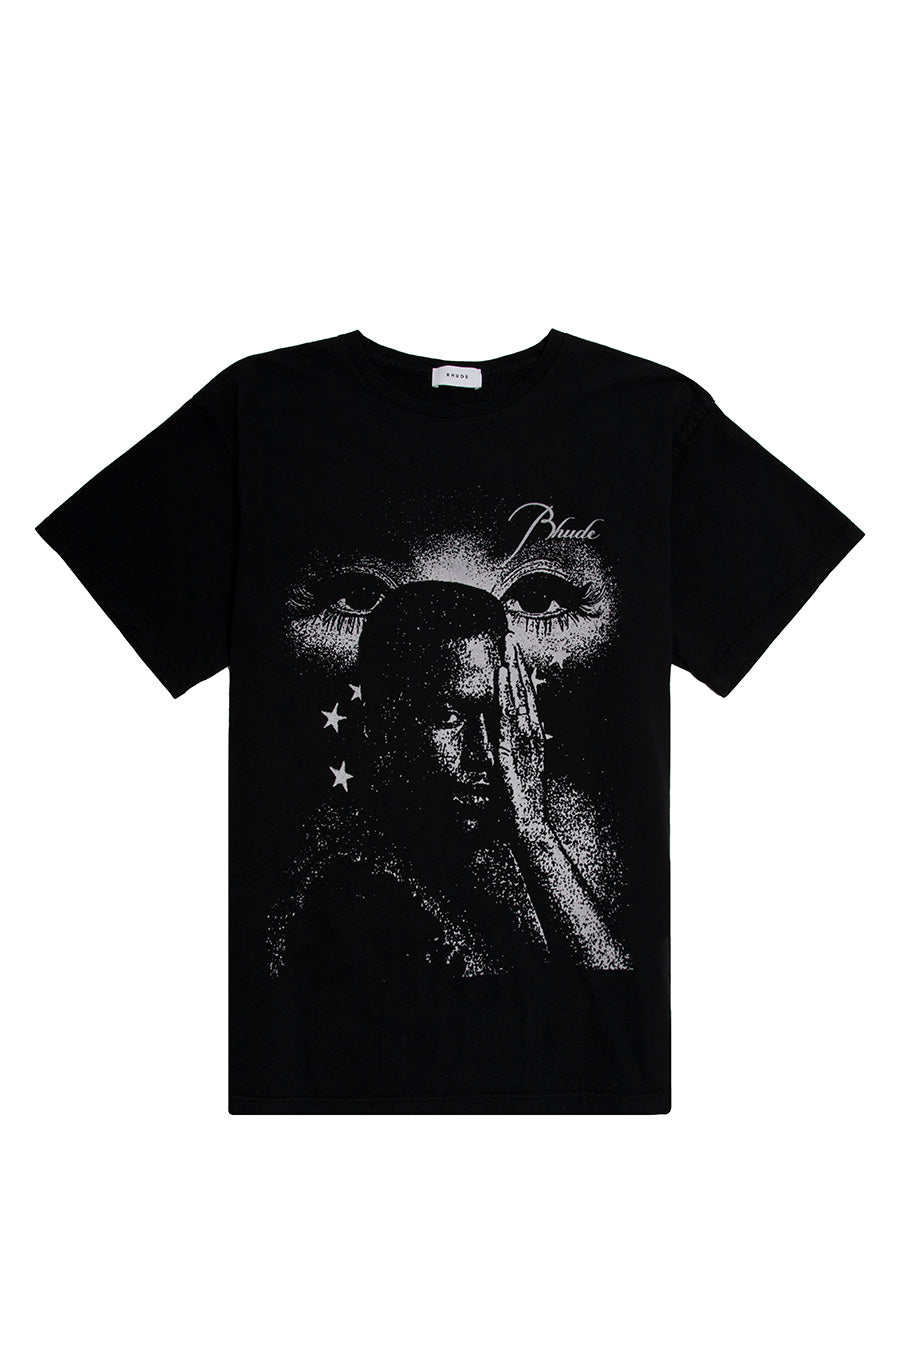 Rhude - Black Beauty T-Shirt | 1032 SPACE